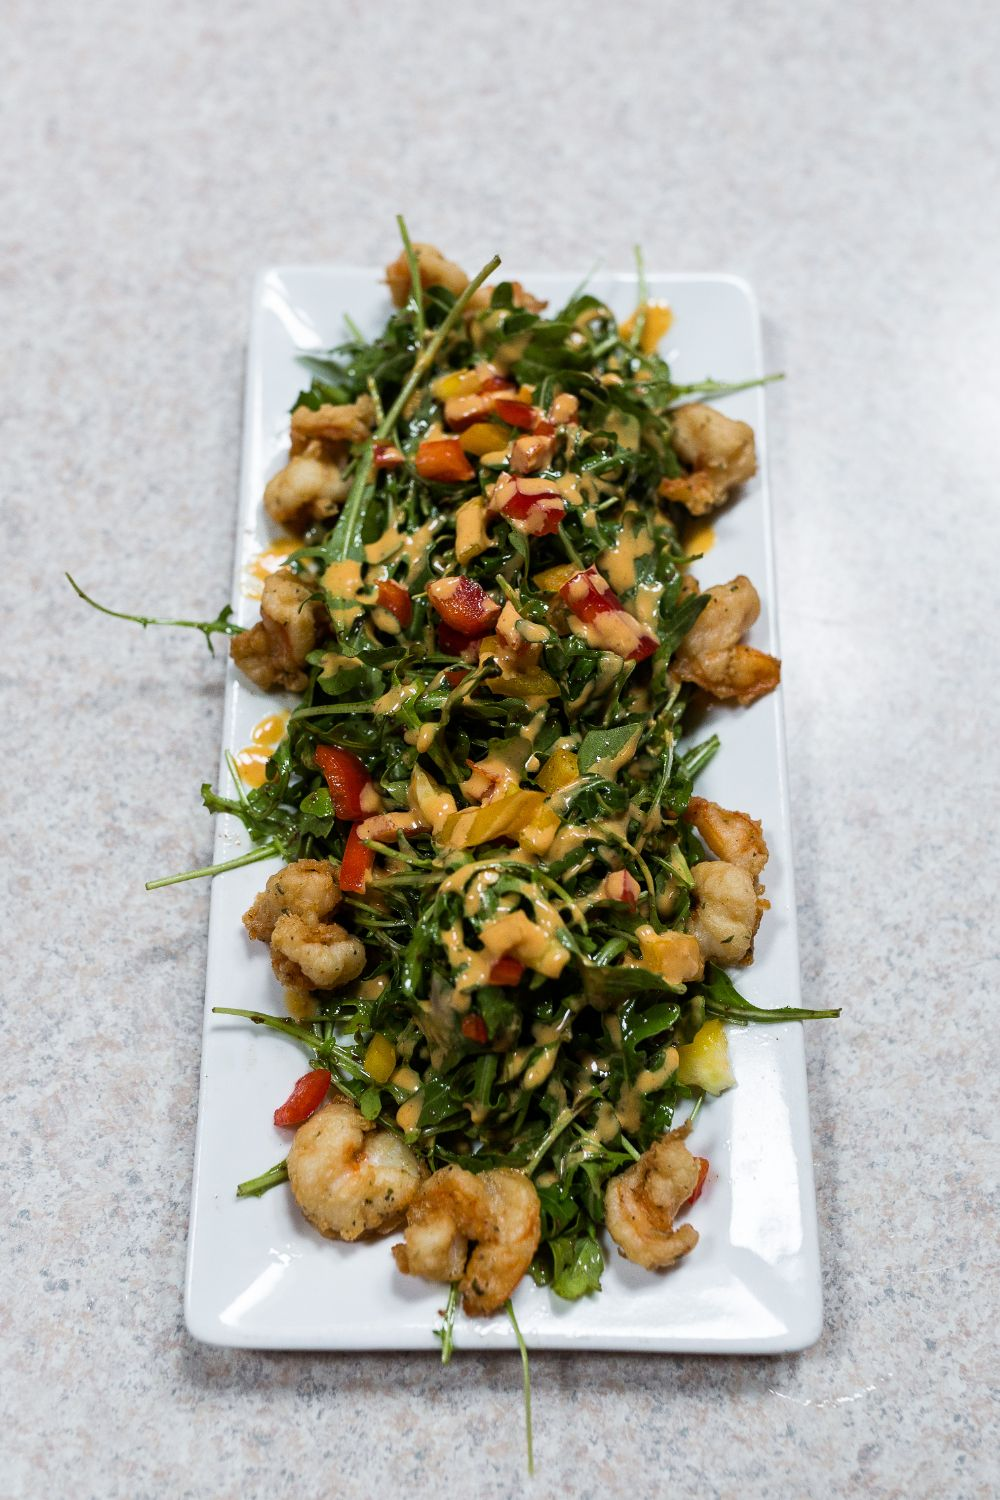 platter with spinach, chicken, and vegatables